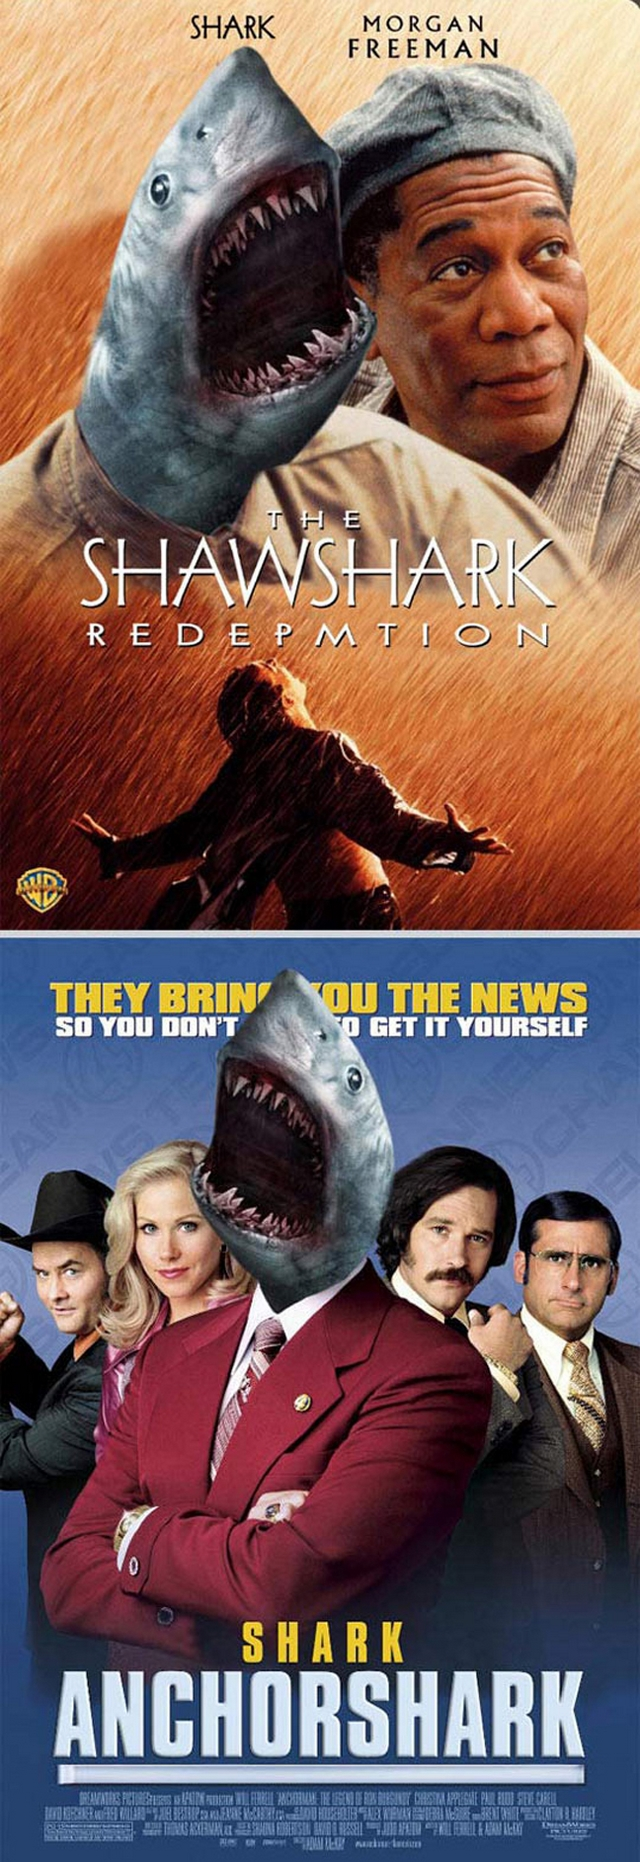 Sharks Make Movies More Fun